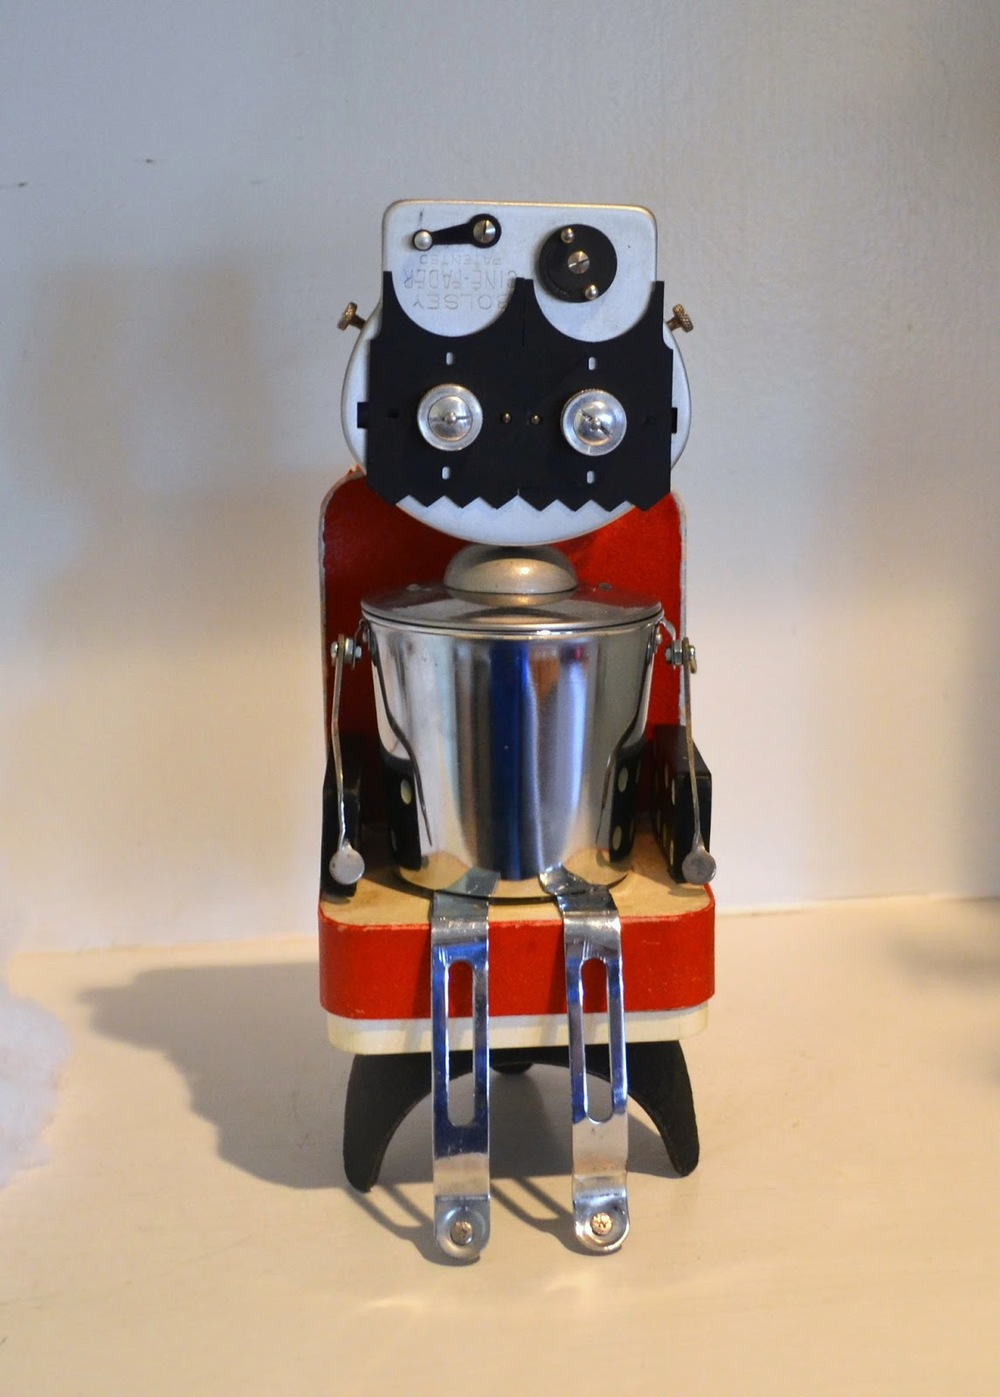 https://www.etsy.com/listing/214659342/cine-bot-a-recycled-robot-and-movie?ref=shop_home_feat_1